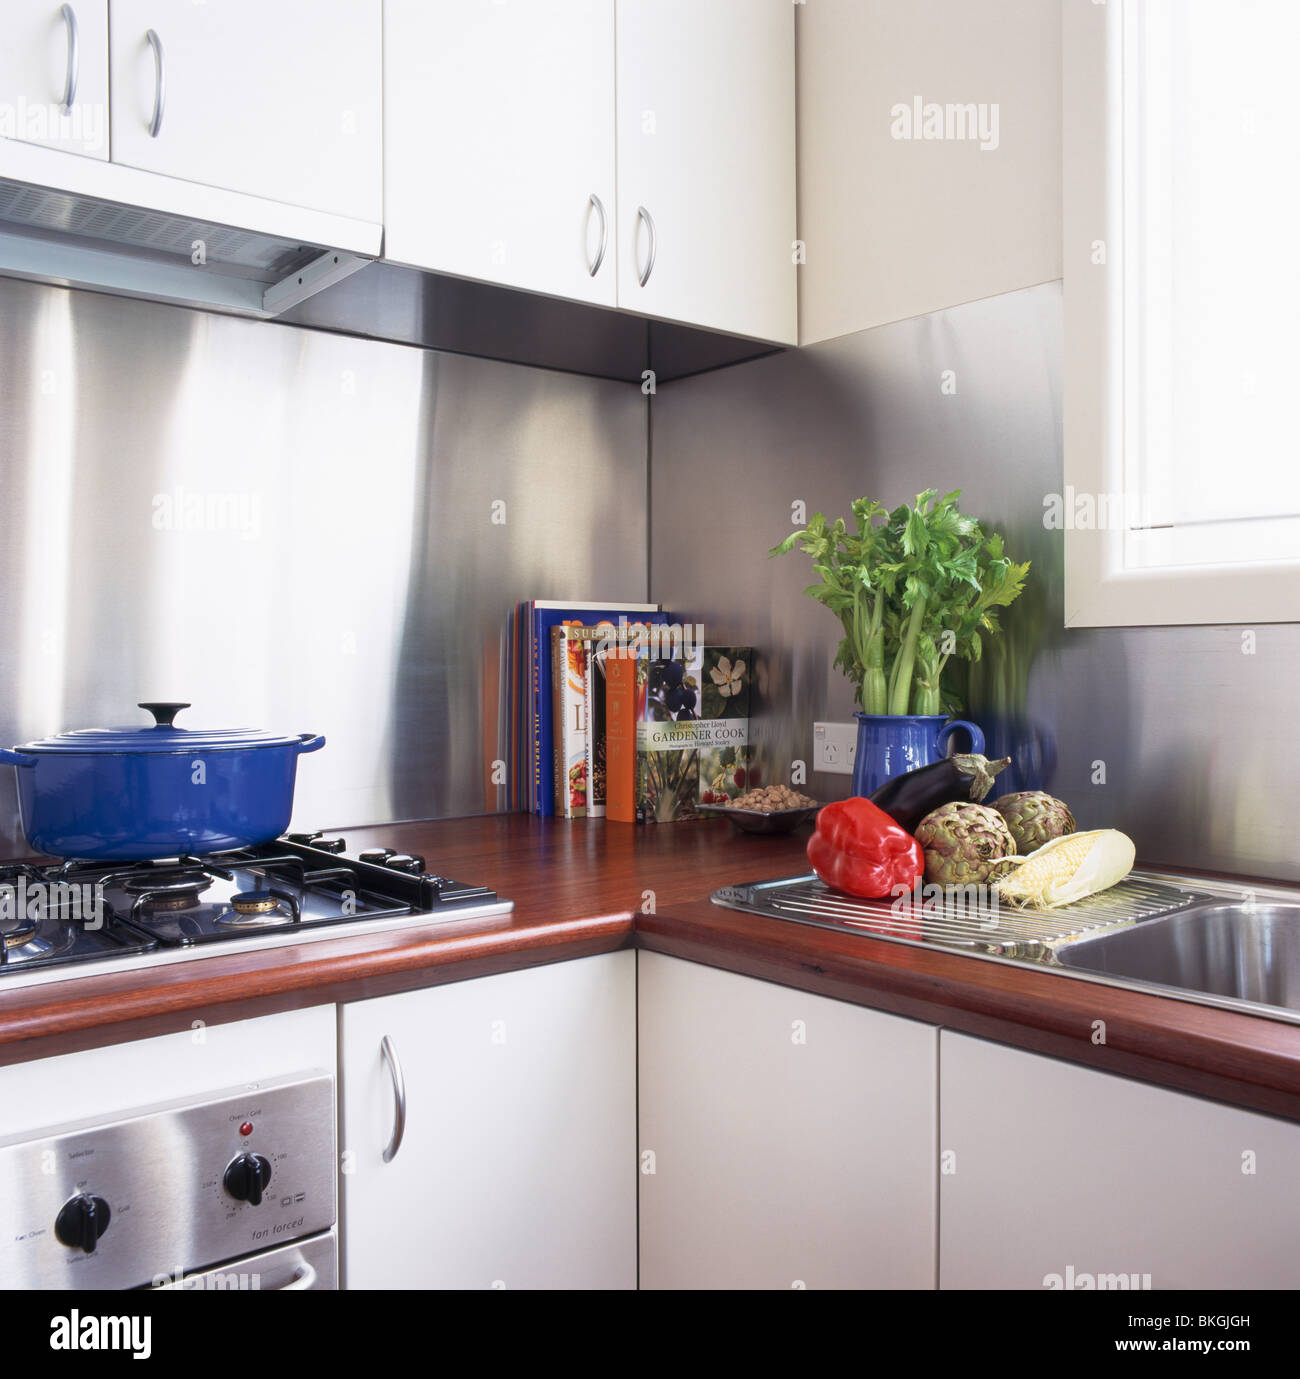 Jjo Urban Kitchen Modern Fitted Kitchens: Wood Worktops On Fitted Units In Modern White Kitchen With